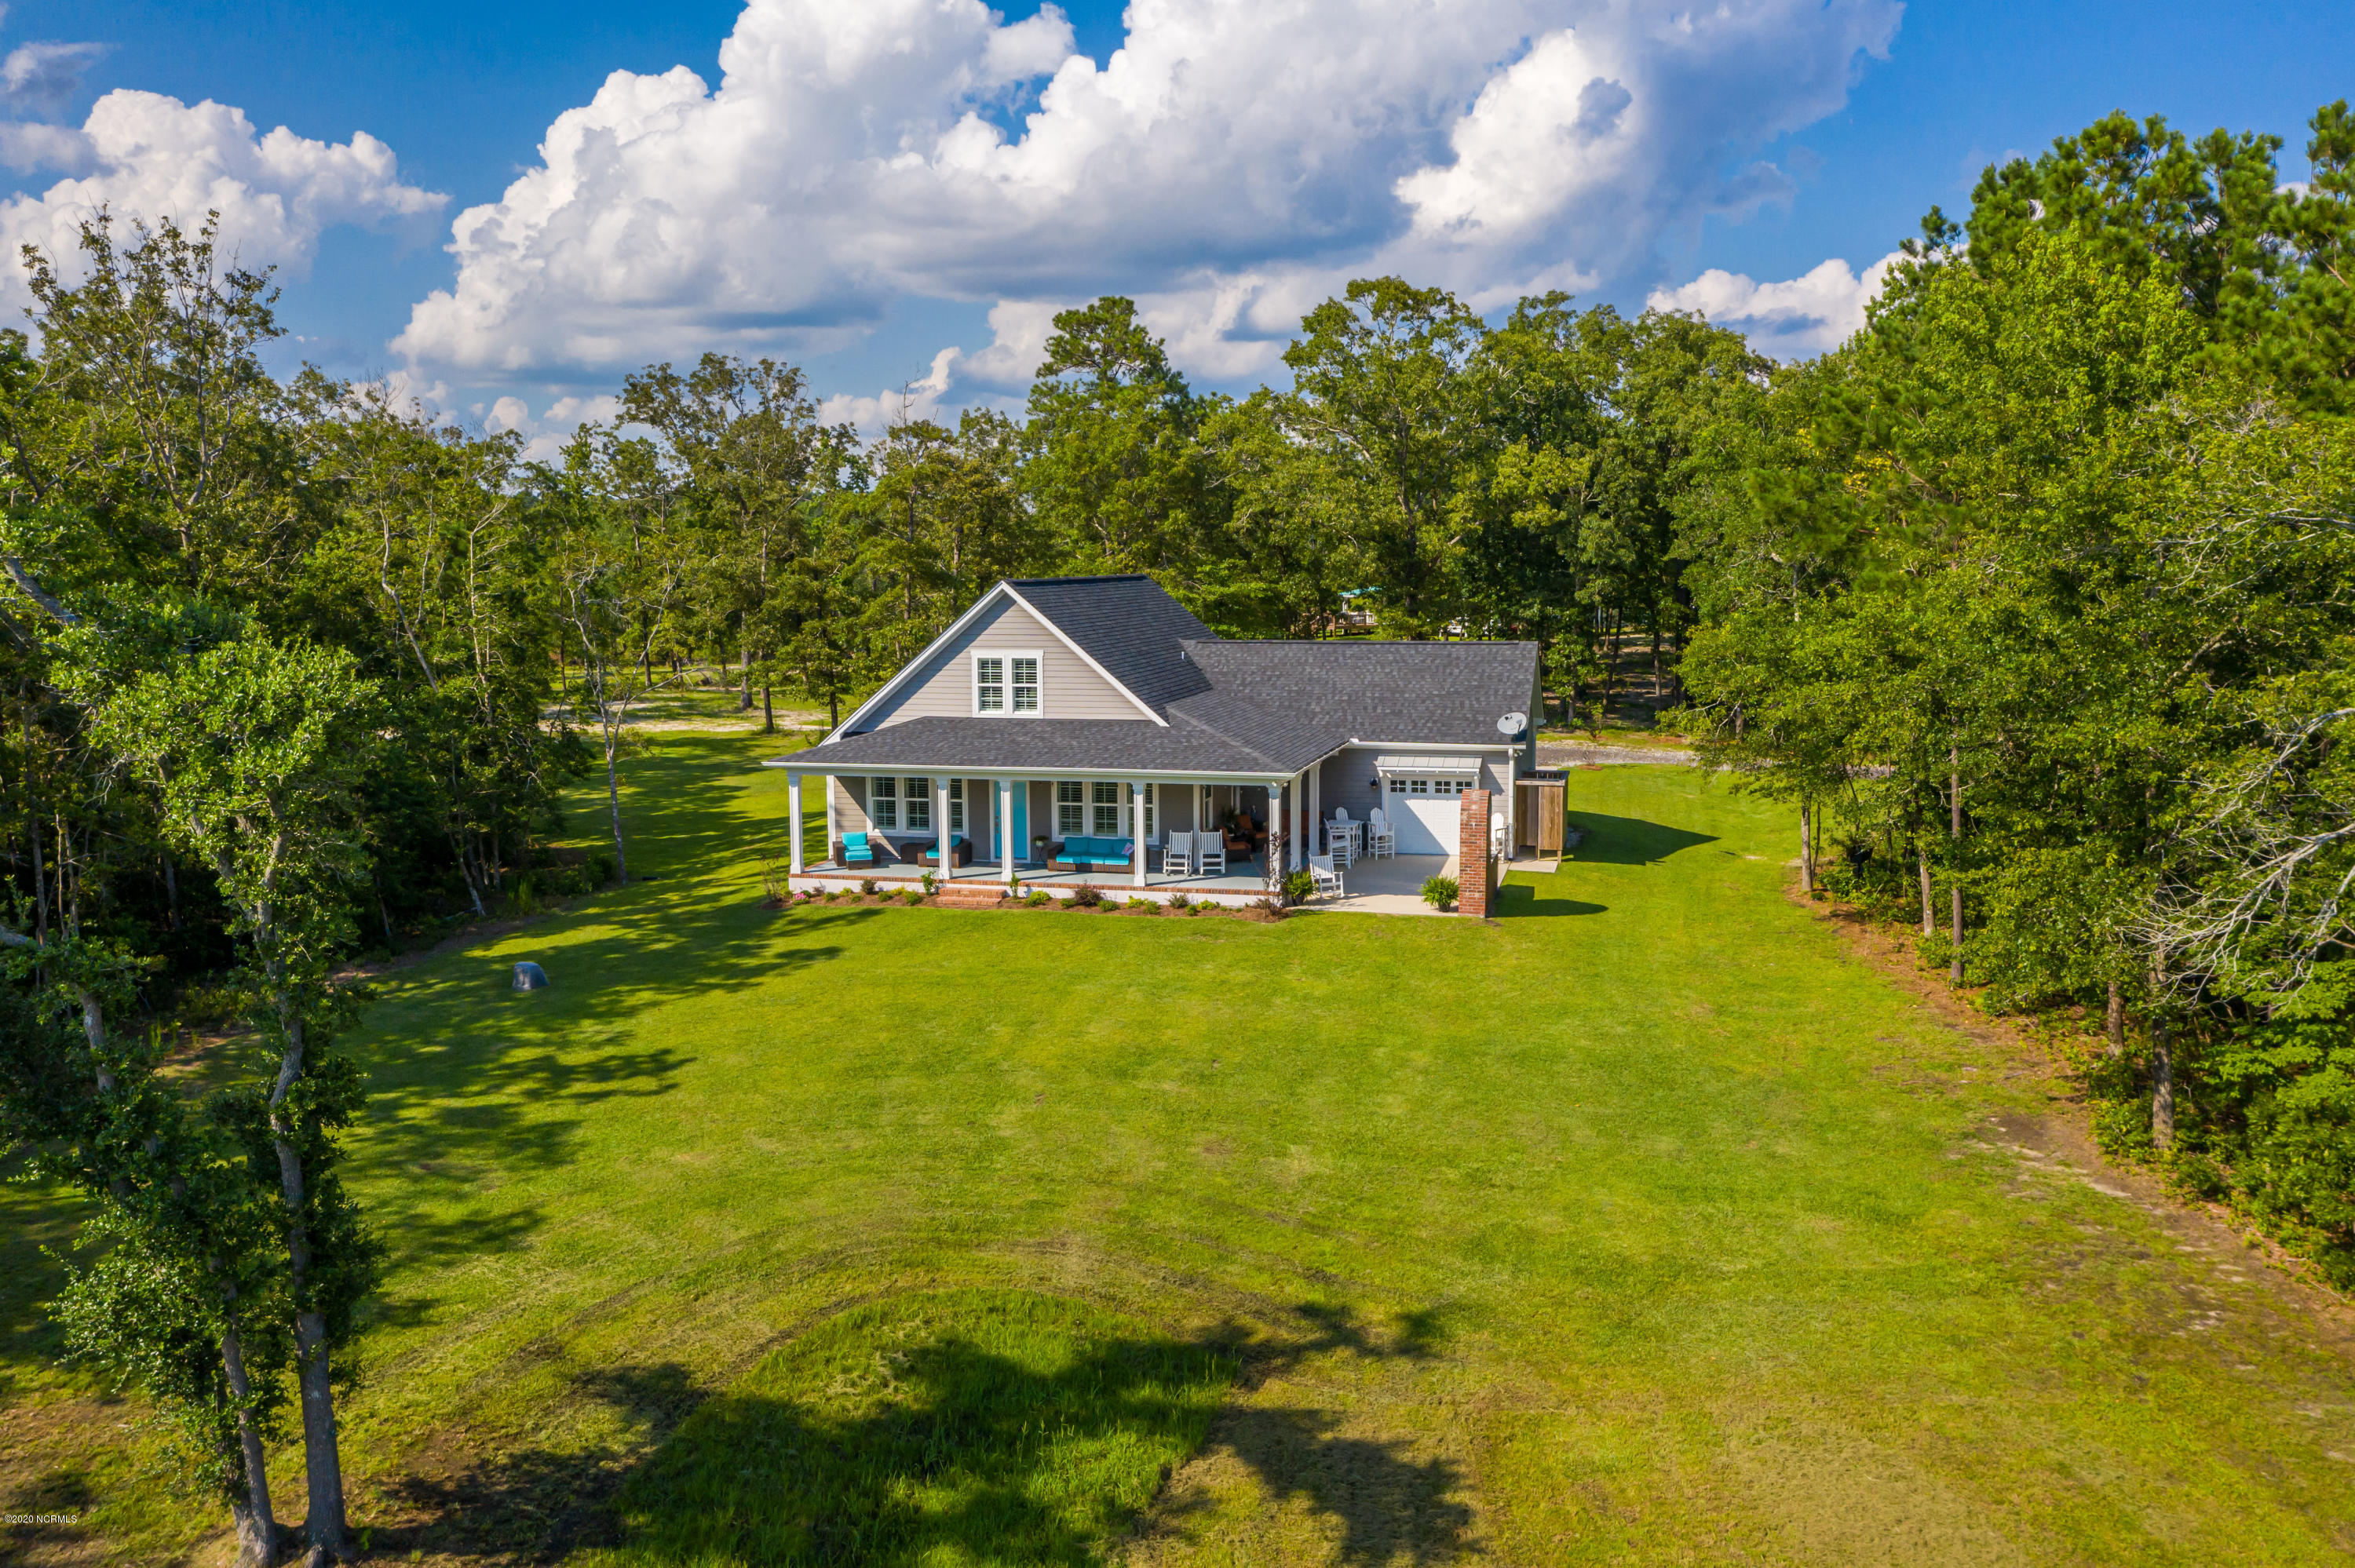 1108 Mcclammy Road, Hampstead, North Carolina 28443, 3 Bedrooms Bedrooms, 6 Rooms Rooms,2 BathroomsBathrooms,Single family residence,For sale,Mcclammy,100231055